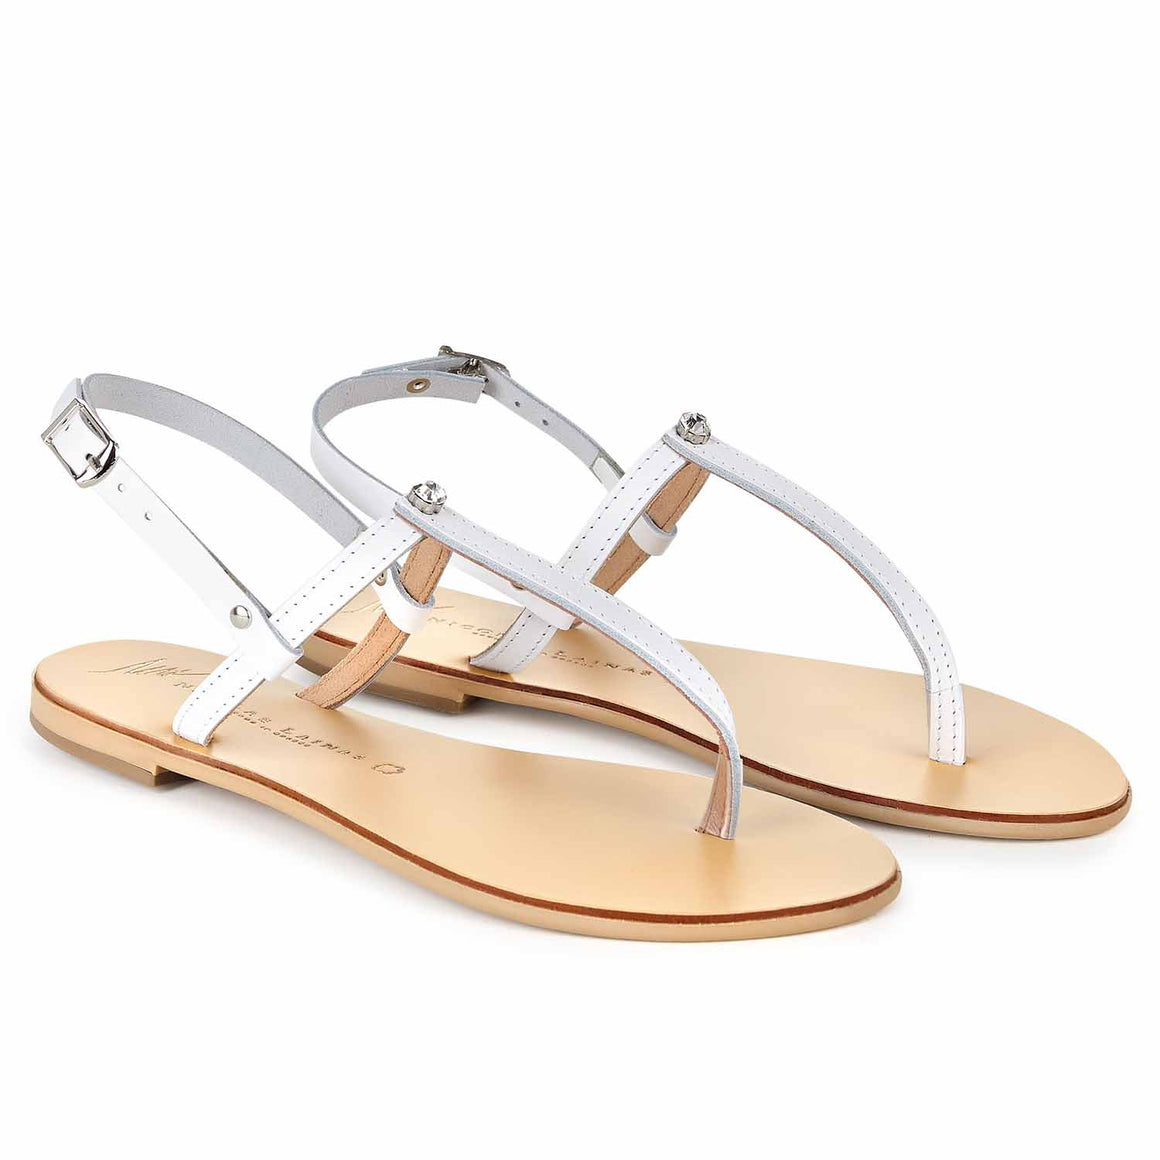 NICOLAS LAINAS 254 WHITE SANDals